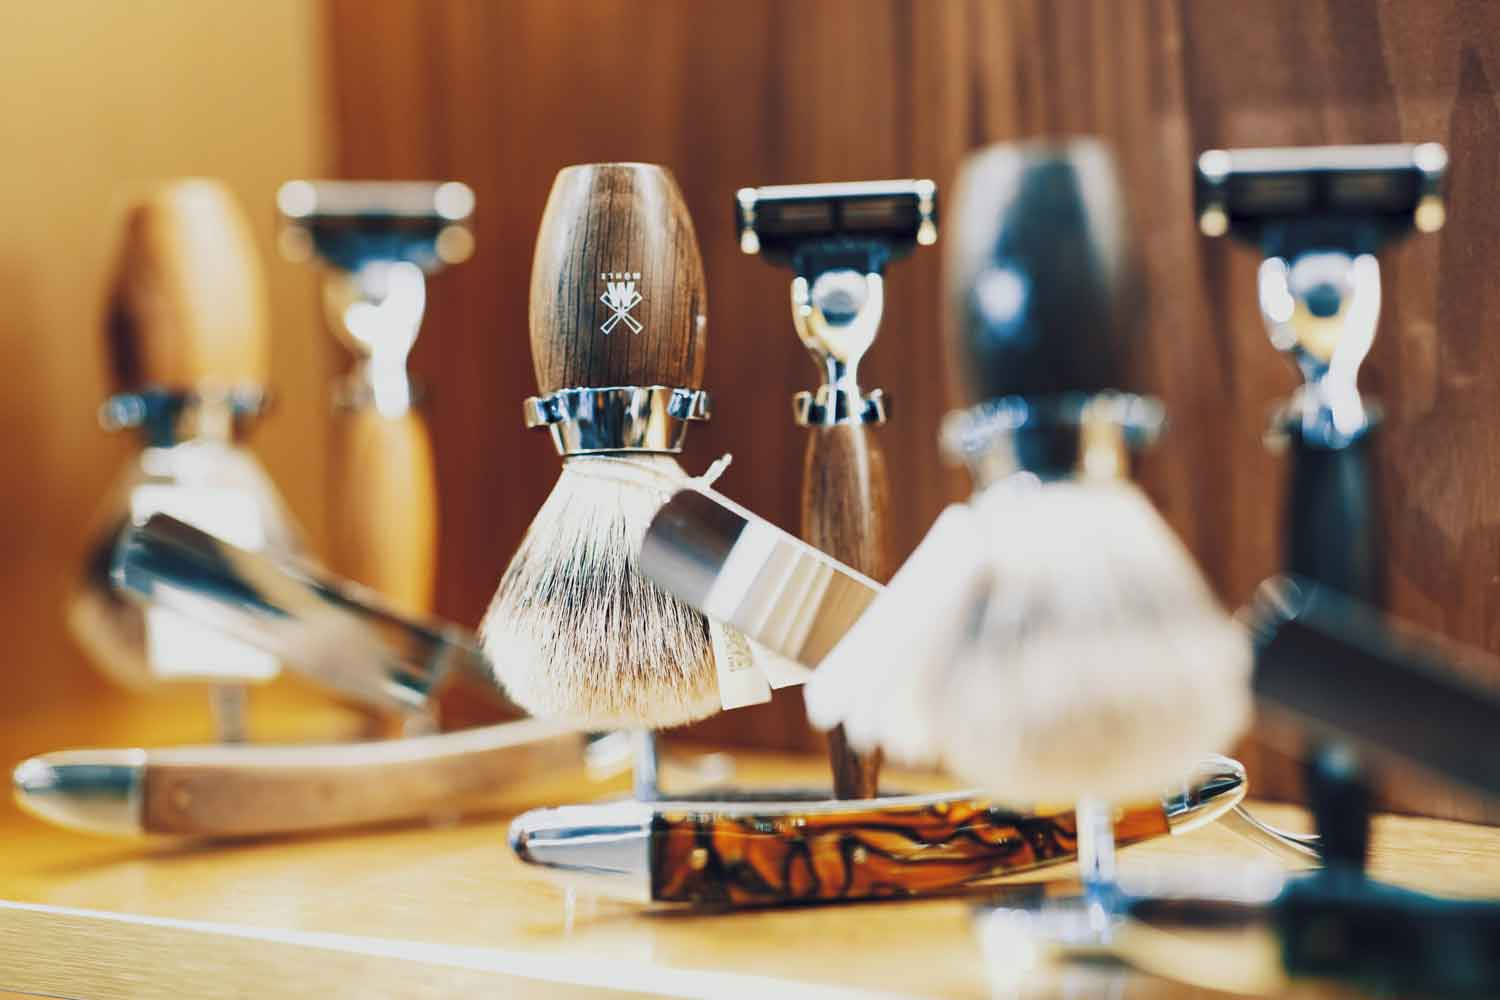 Shaving Strait Razors, Shaving Brushes, Traditional Shaving Techniques